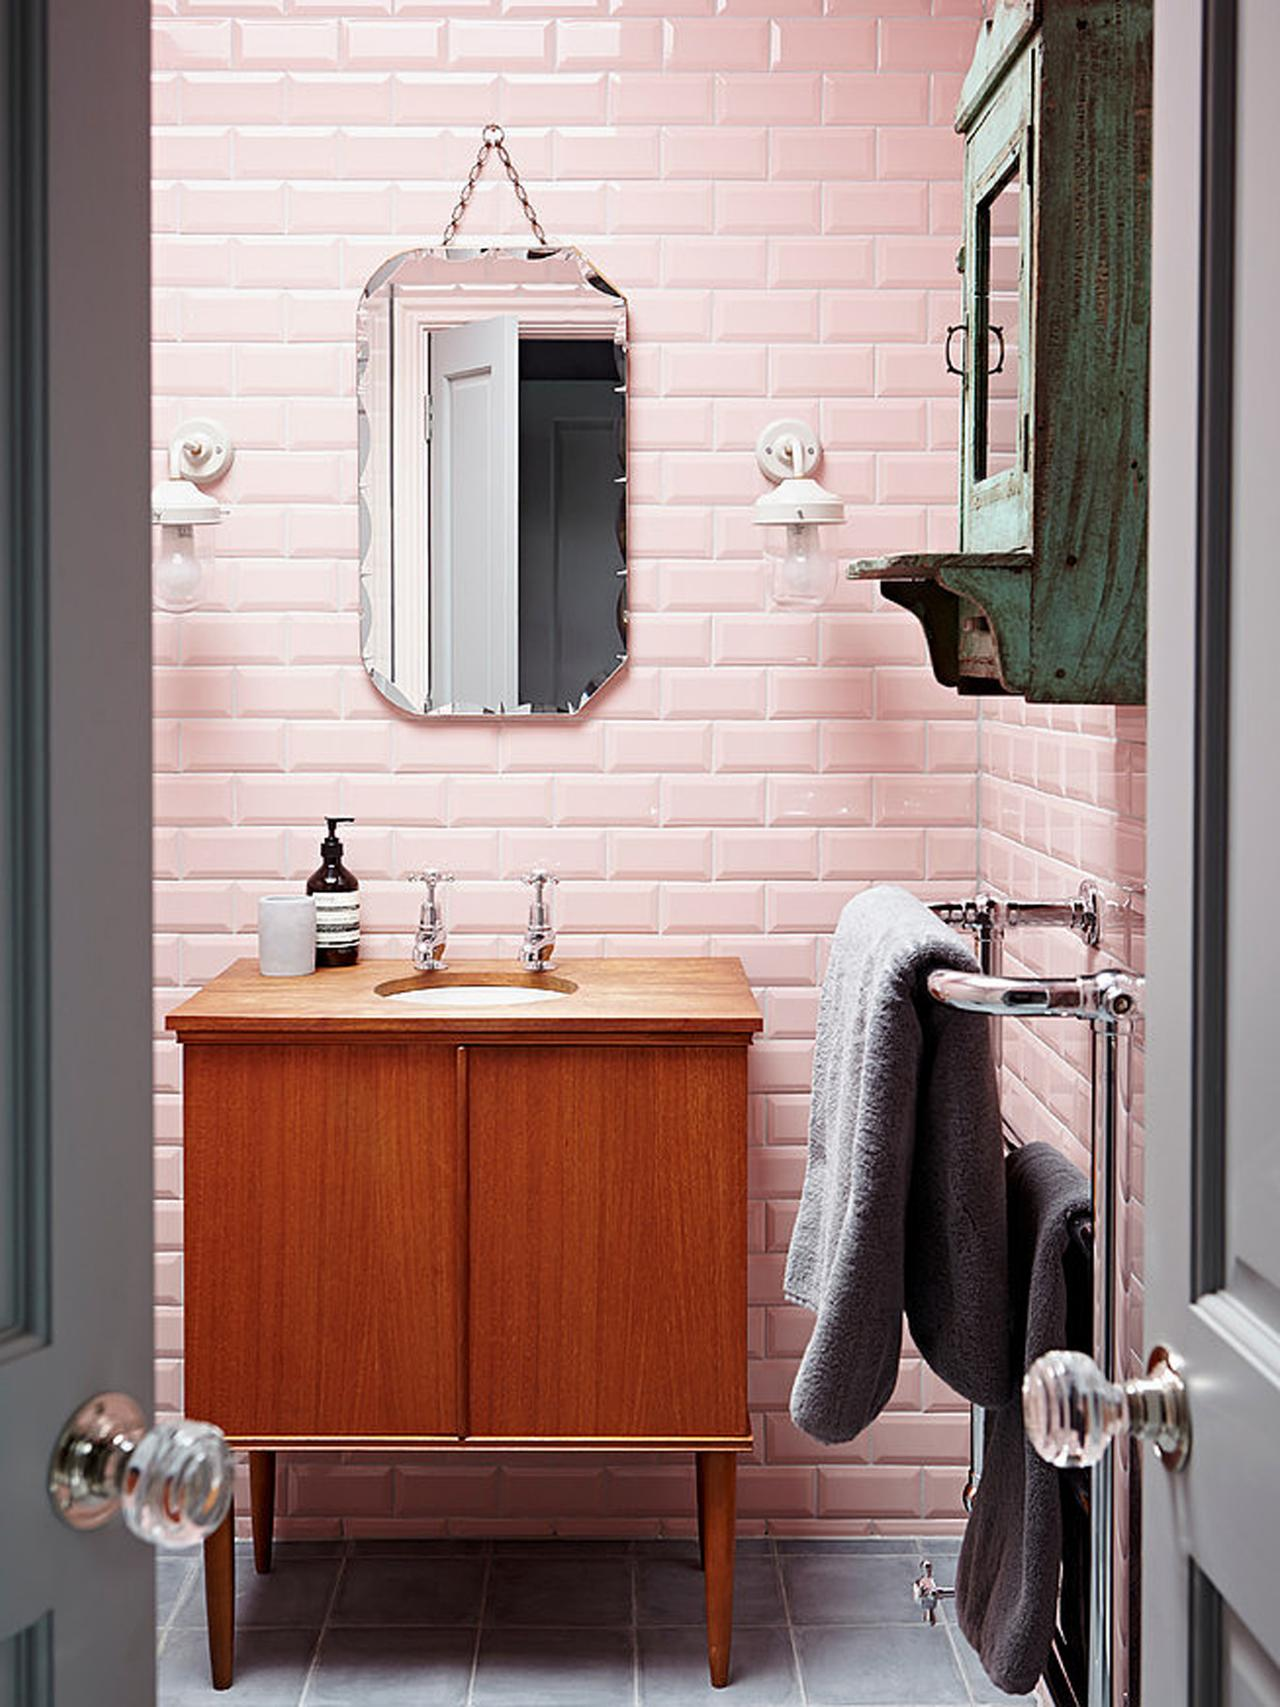 Reasons To Love Retro Pink Tiled Bathrooms Hgtv S Decorating Design Blog